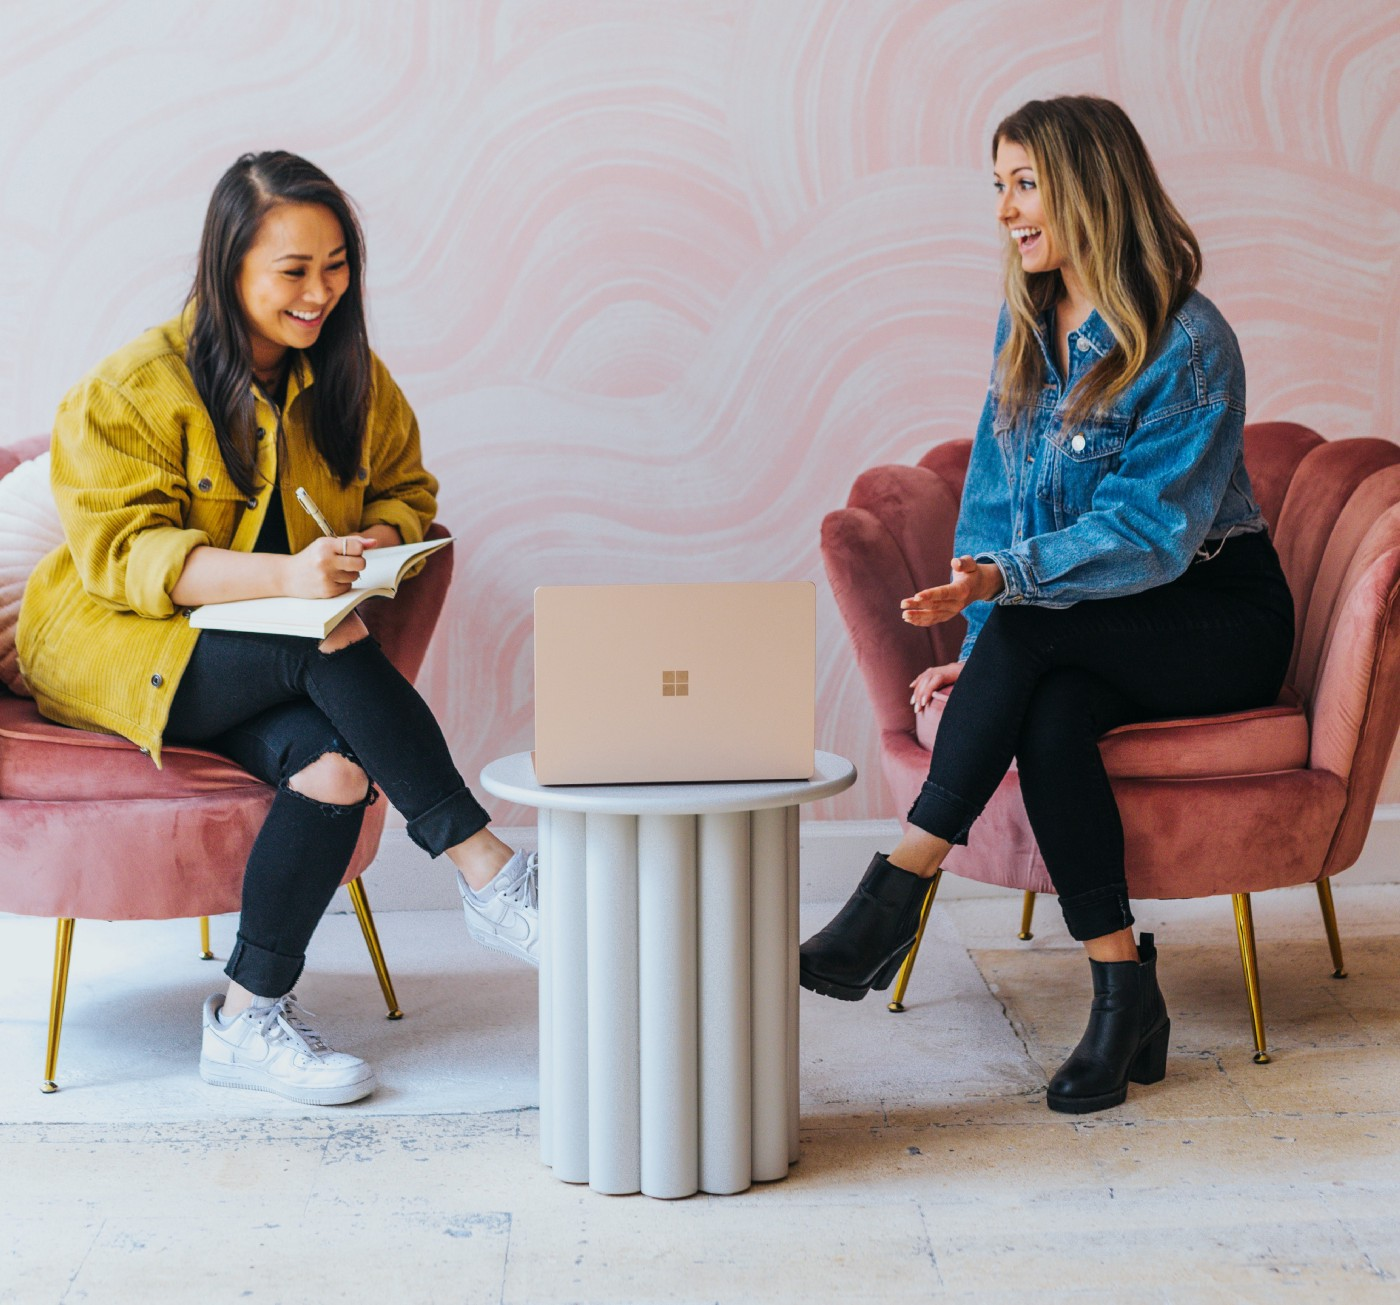 Two women in a meeting looking at a laptop